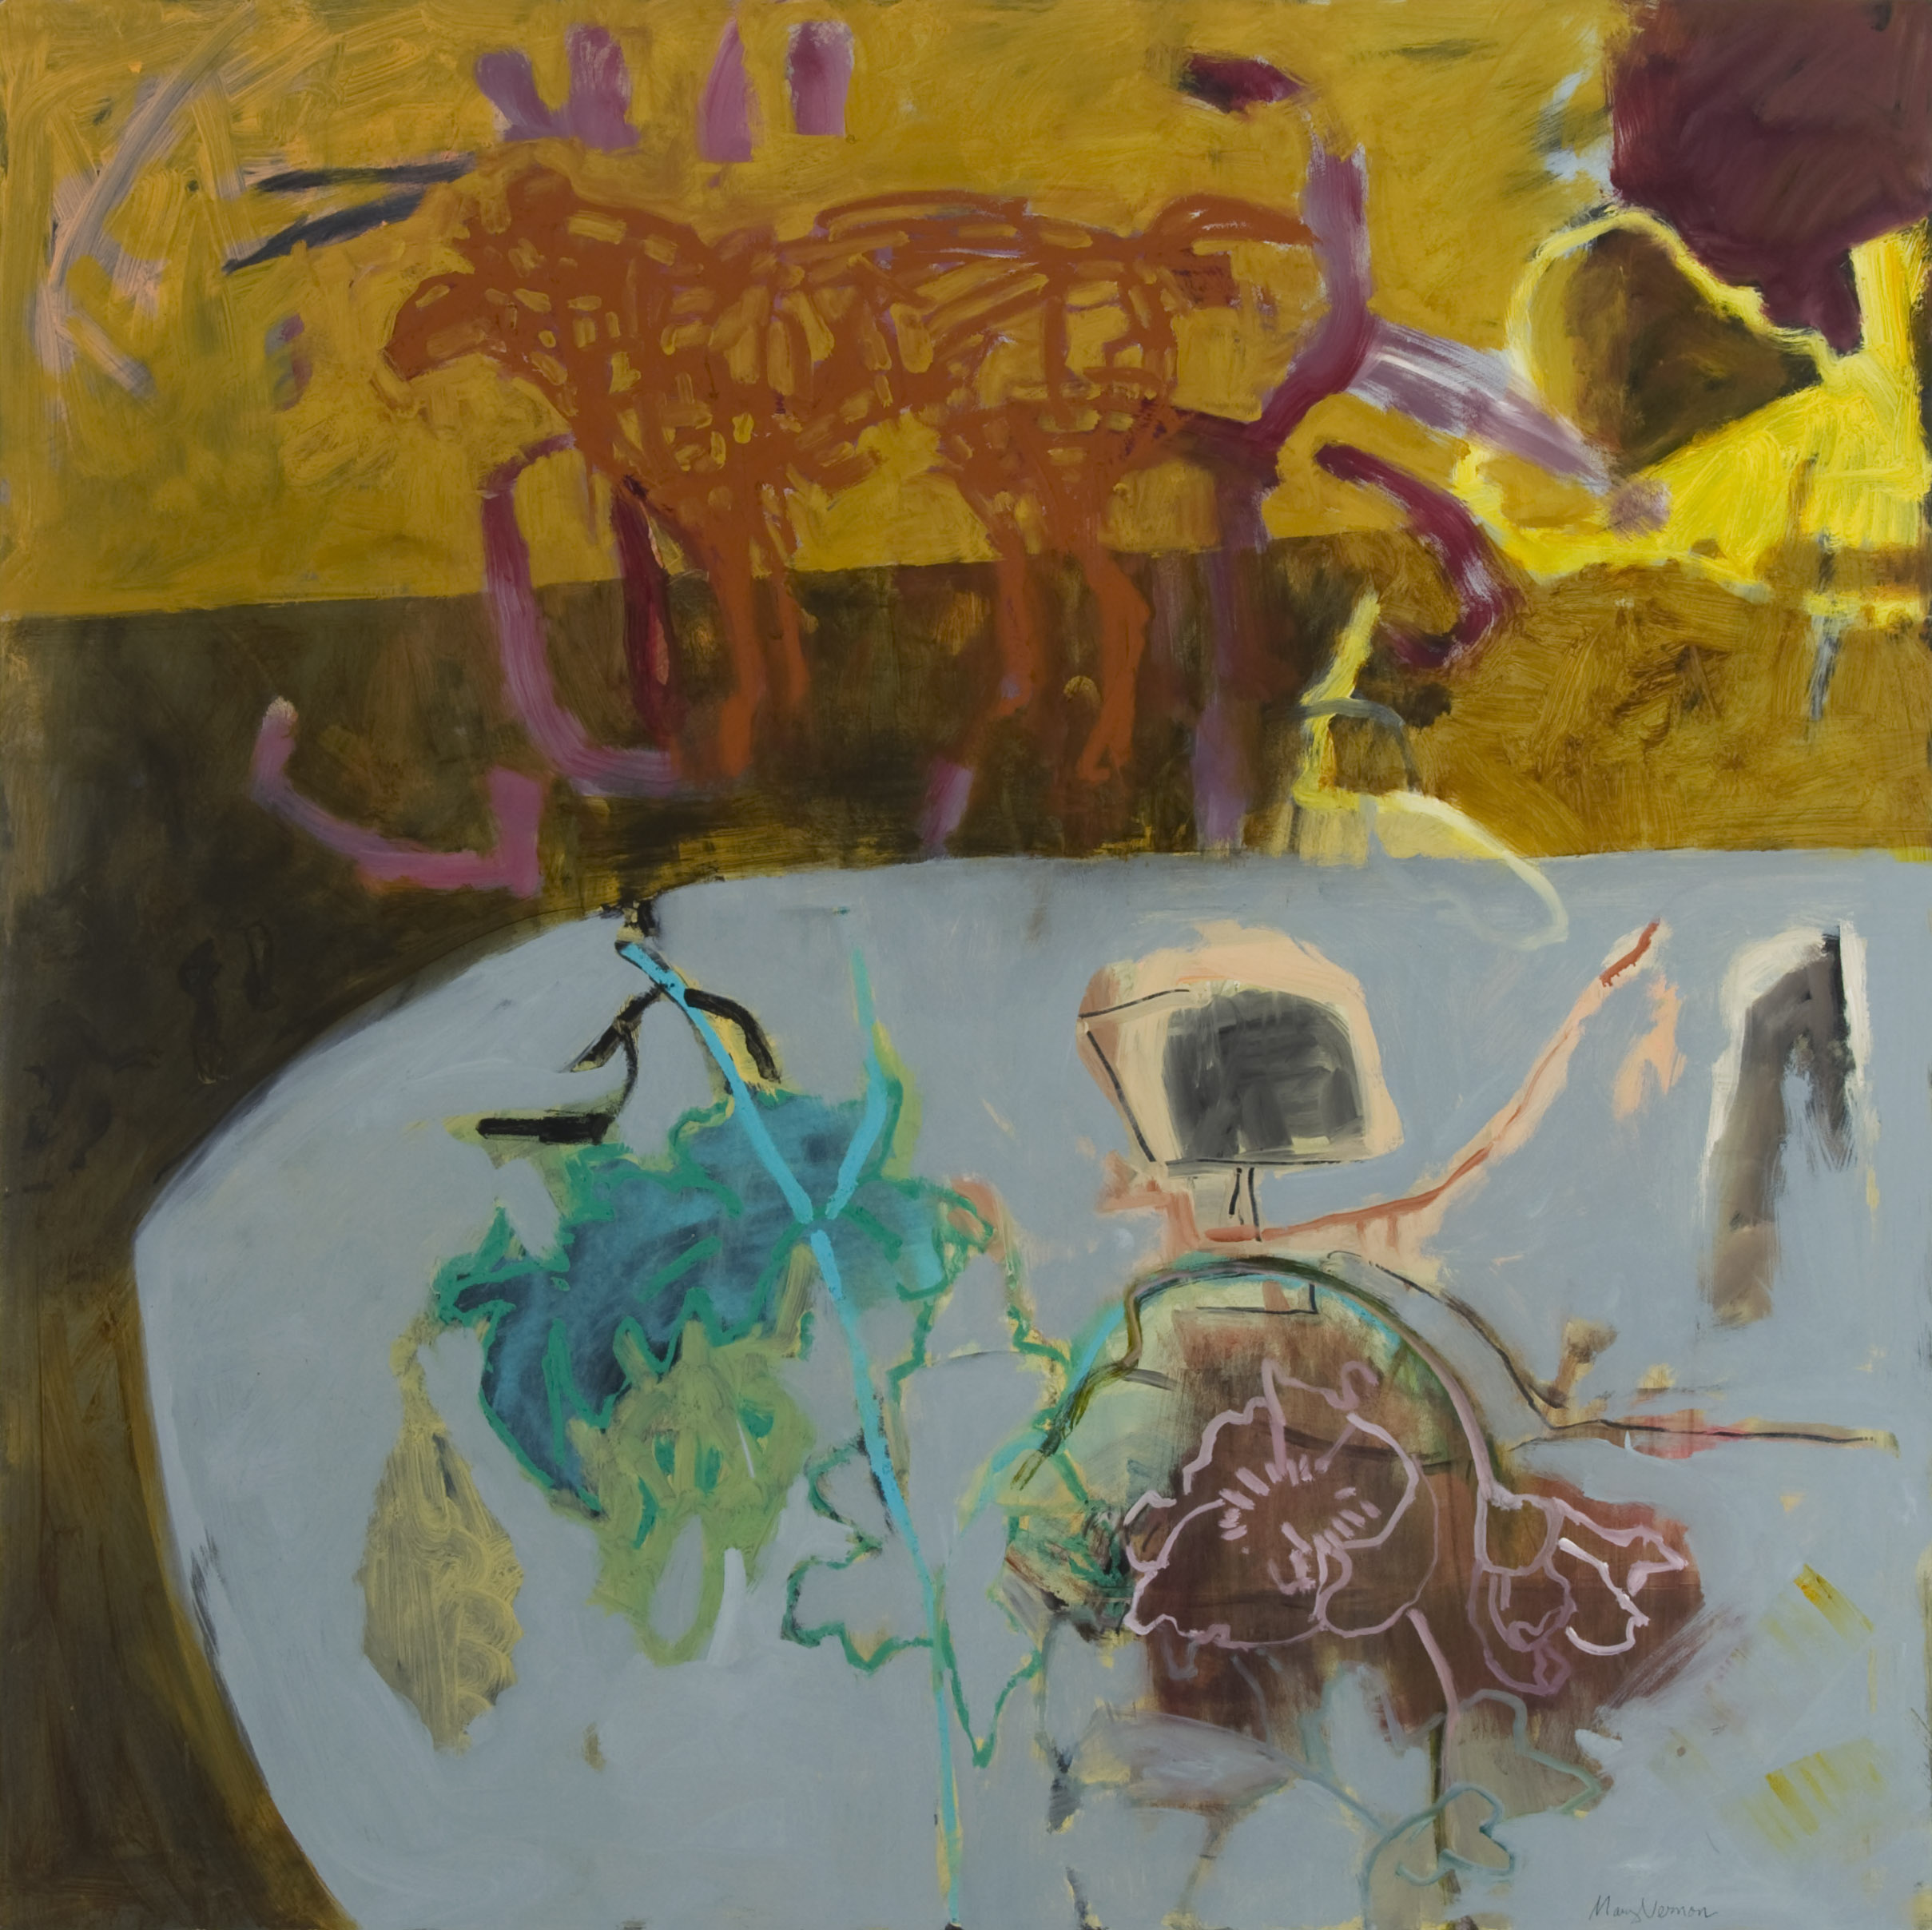 MARY VERNON,  Green Table with Horse , 2013, oil and ink on gessoboard, courtesy of the artist.